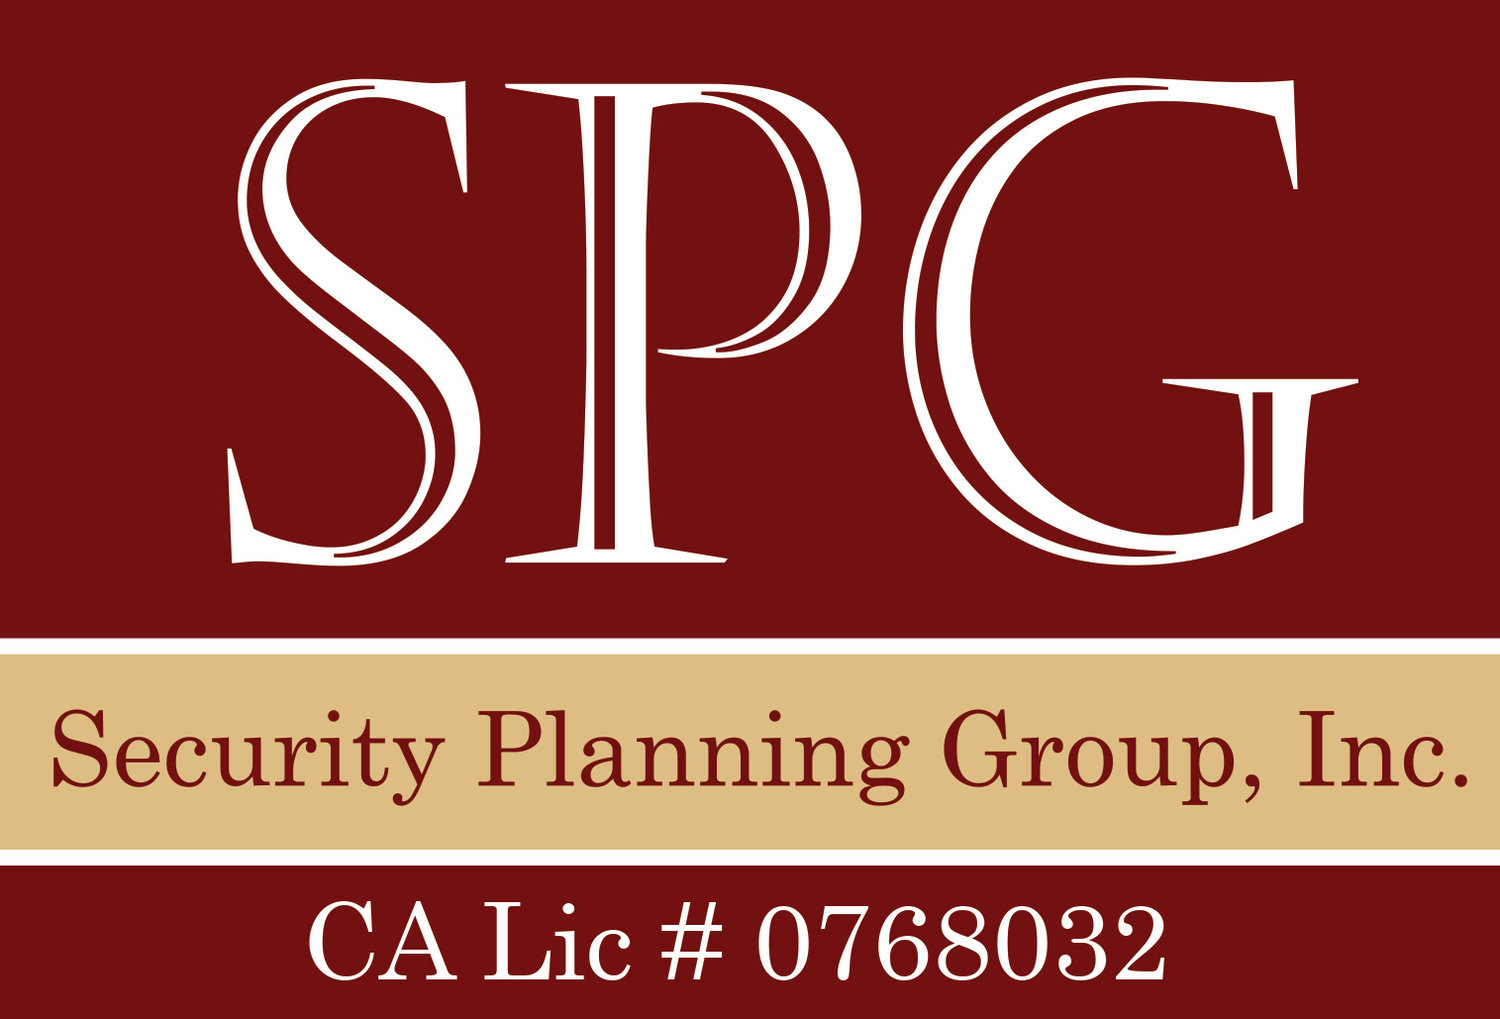 Security Planning Group